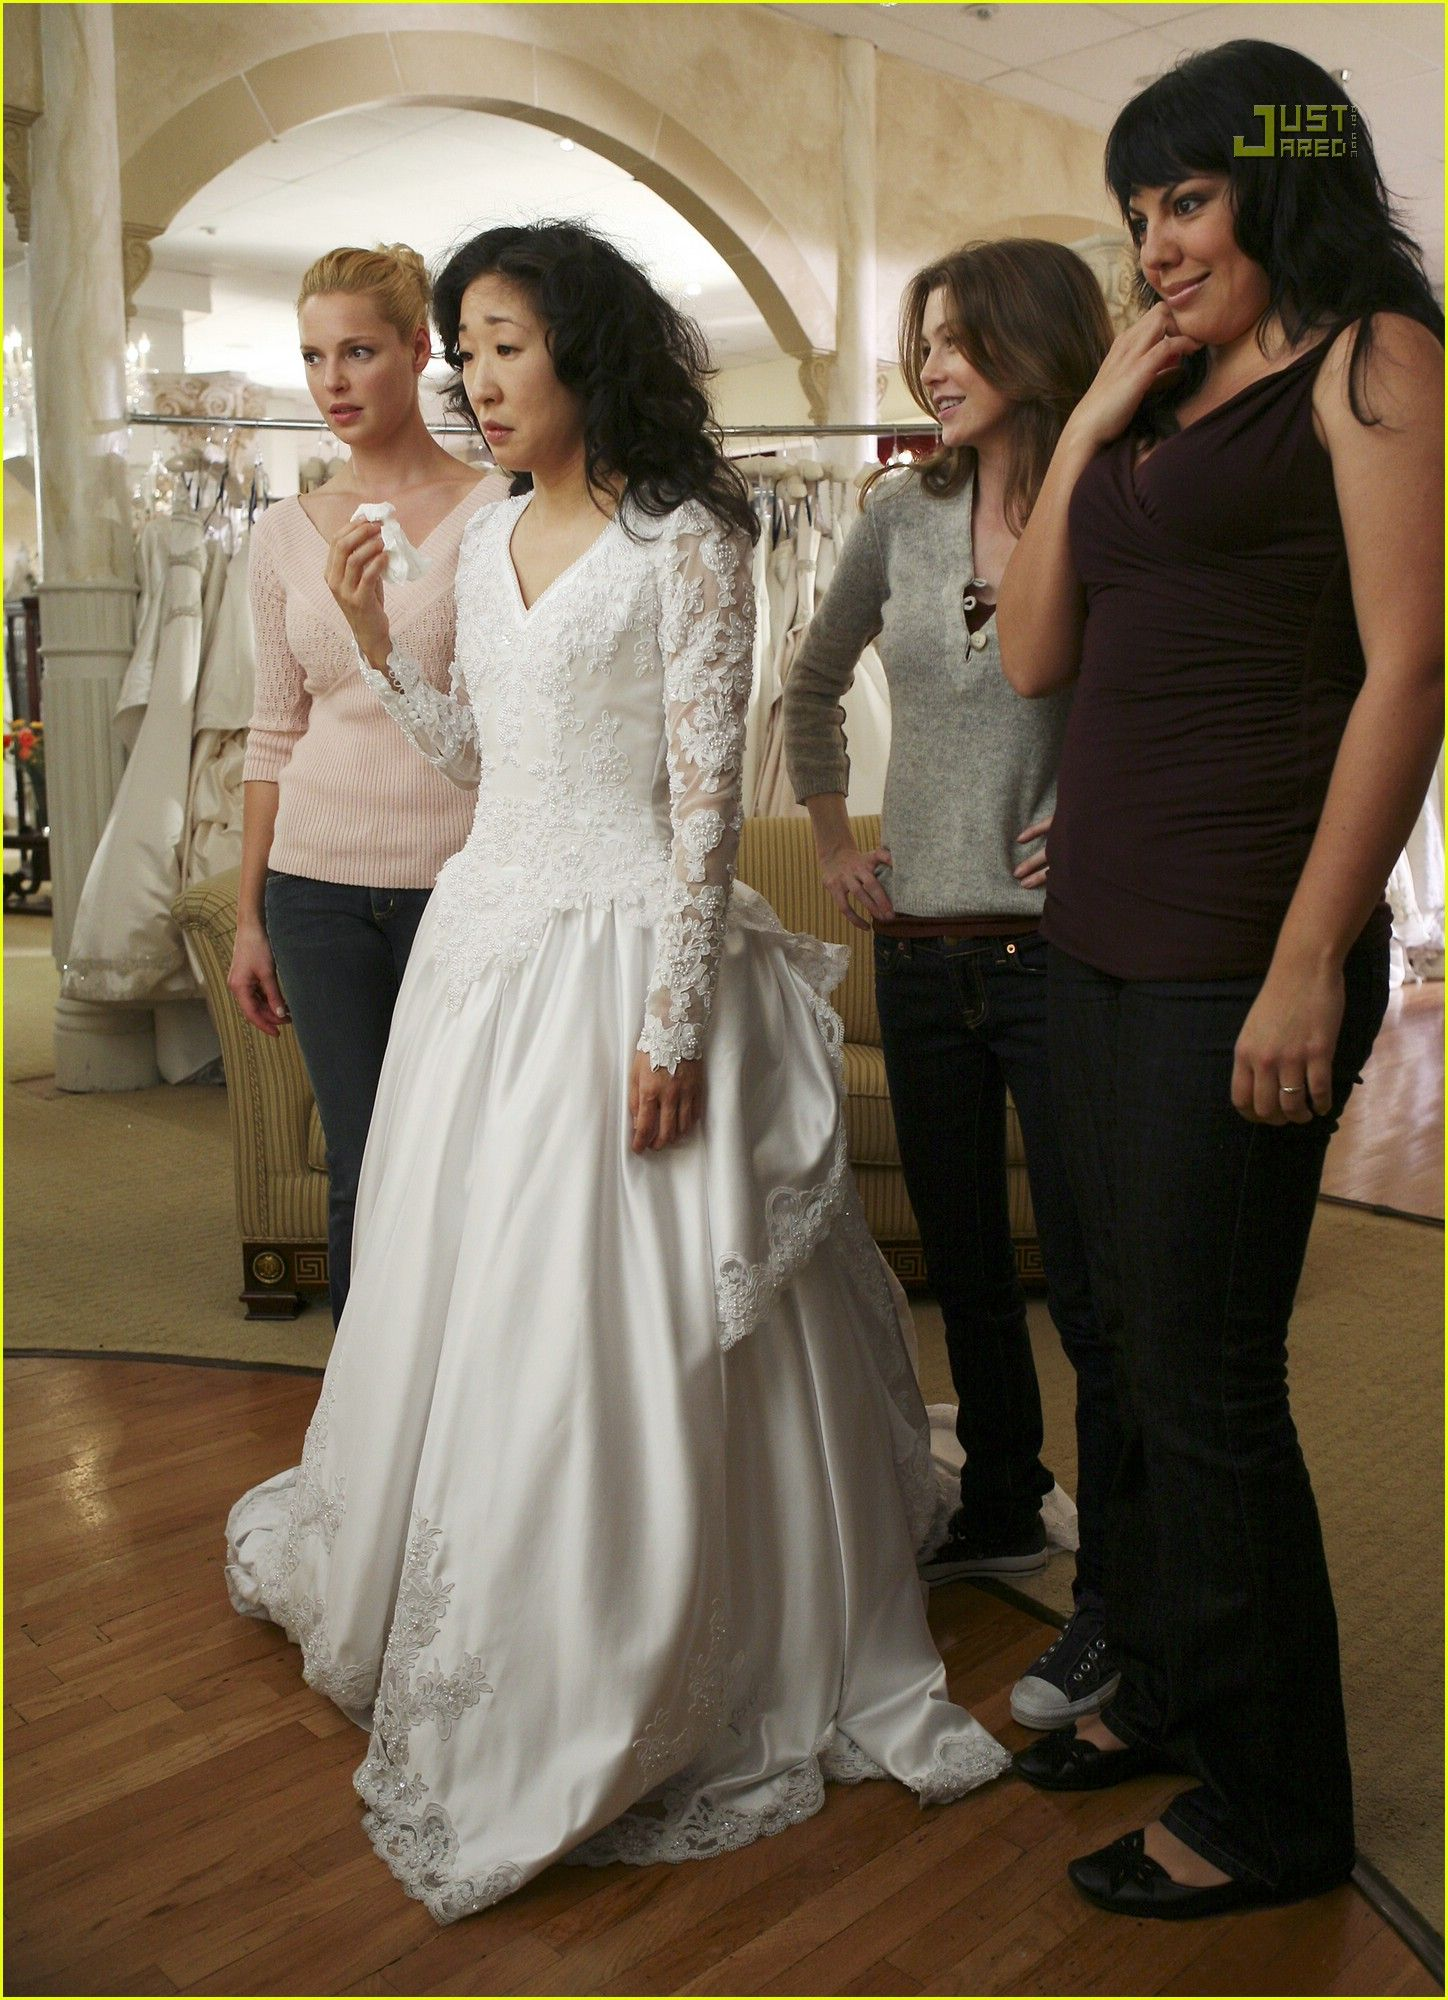 Cristina Yang (Sandra Oh) in wedding dress rehearsal. Bridesmaids ...